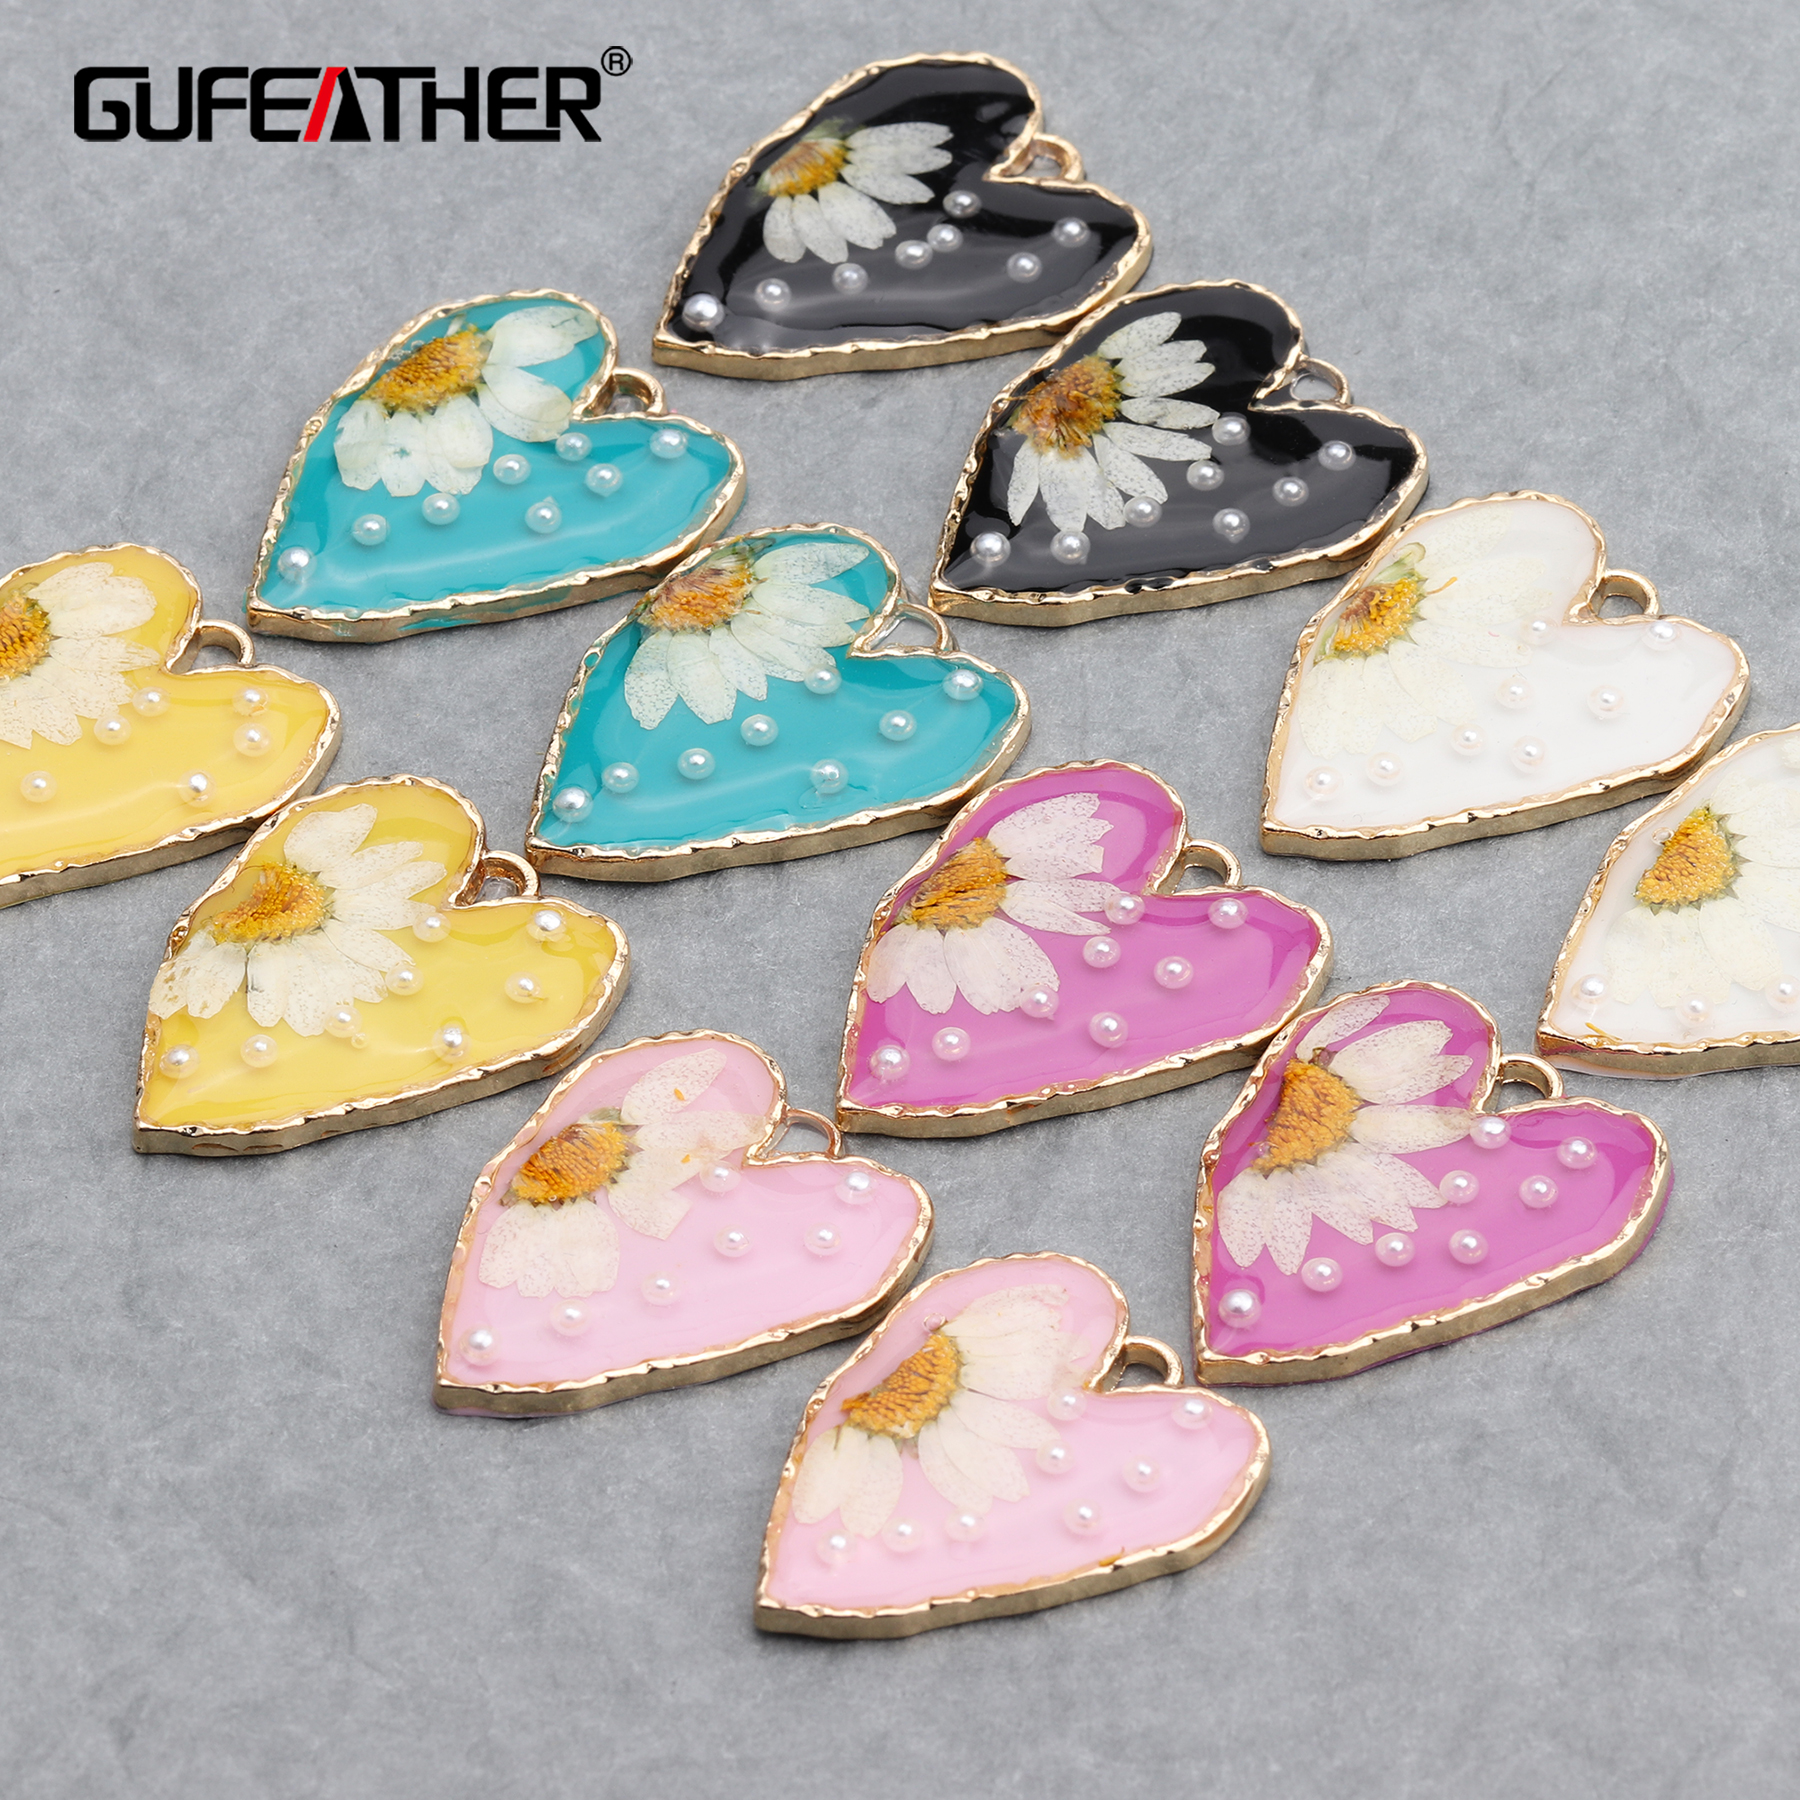 GUFEATHER M654,jewelry Accessories,diy Pendants,hand Made,resin Dried Flower,copper Metal,jewelry Making,diy Earrings,10pcs/lot